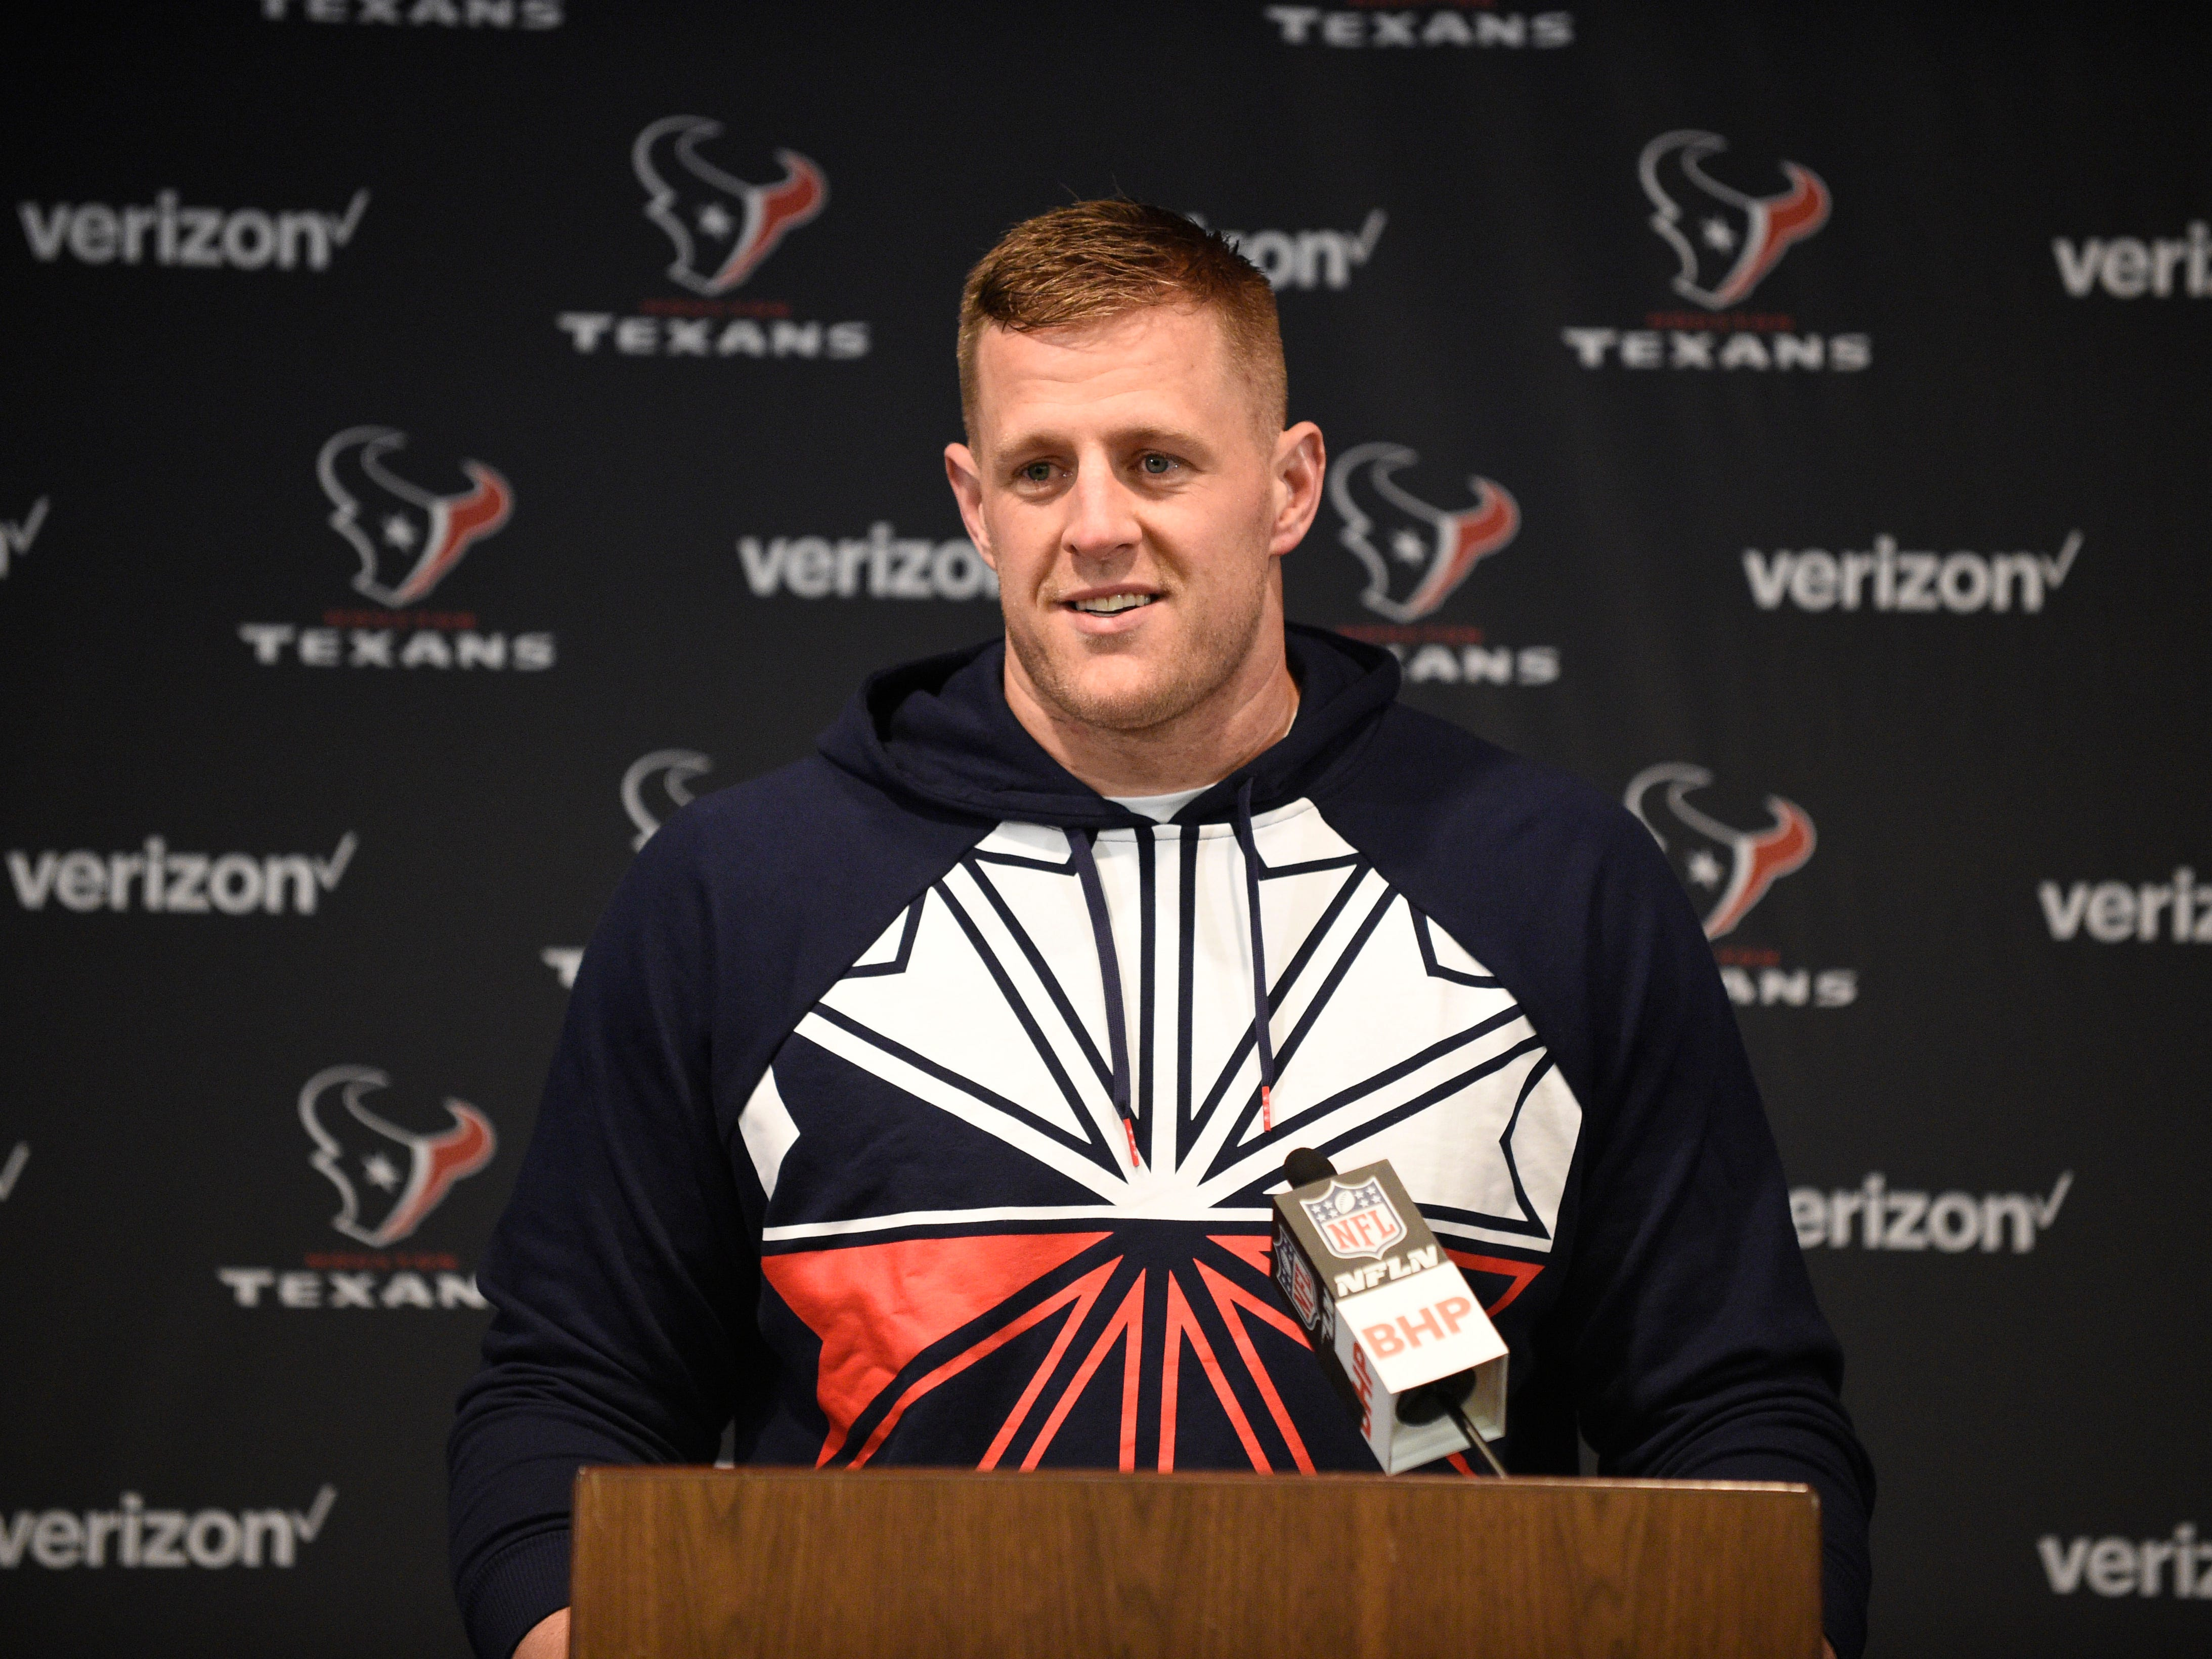 Houston Texans defensive end J.J. Watt talks with the media following a game against the Dallas Cowboys, Sunday, Oct. 7, 2018, in Houston.